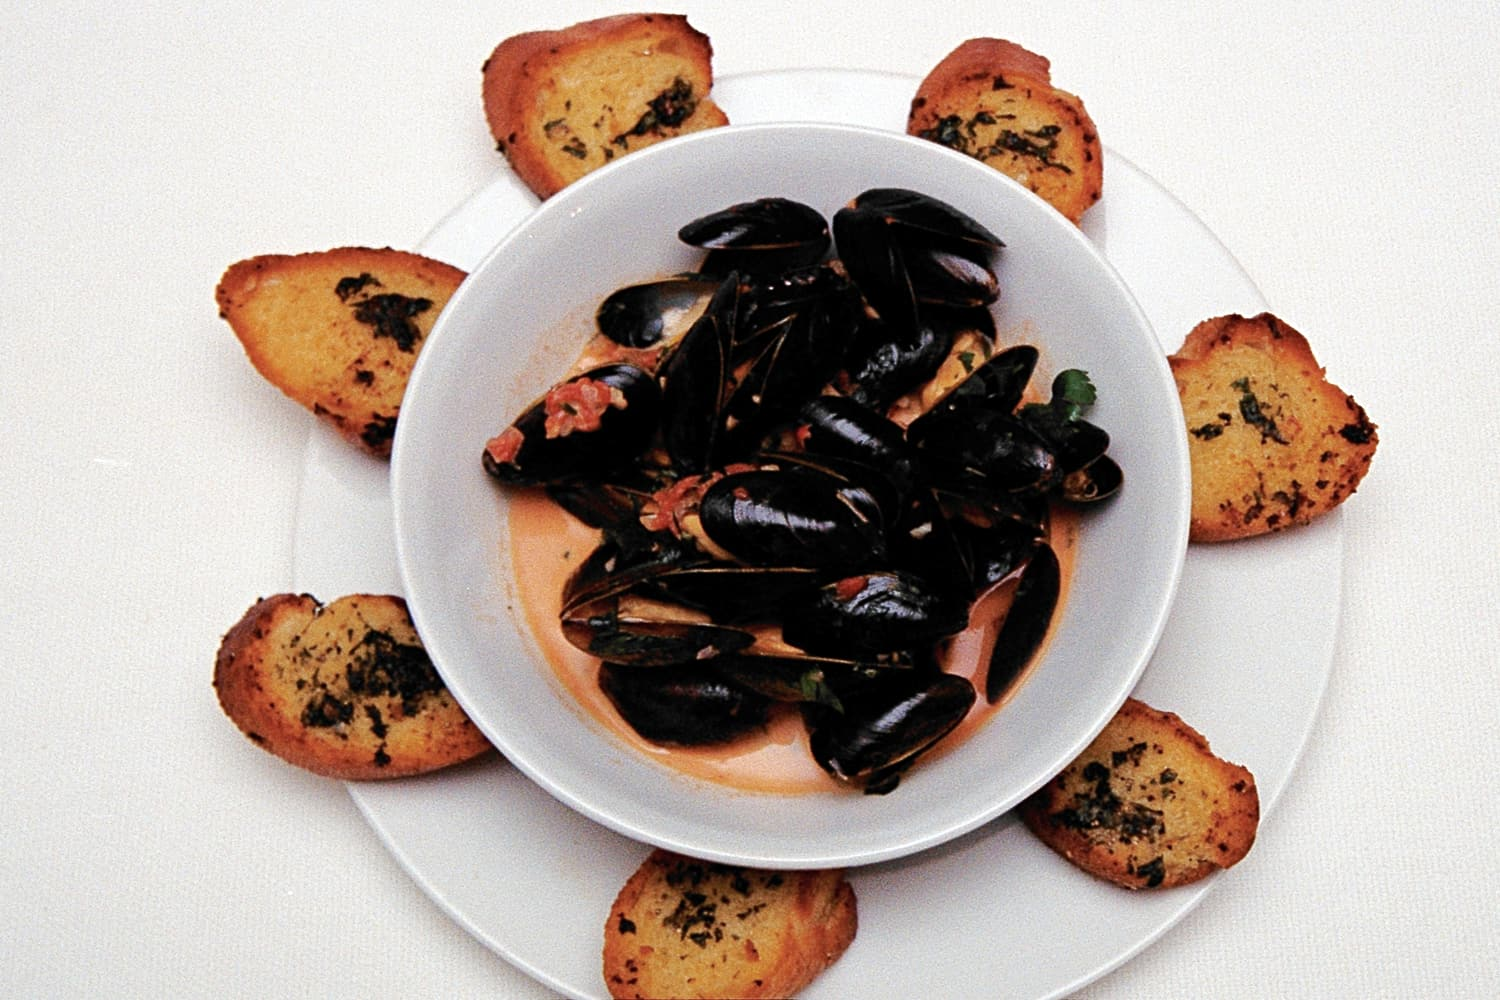 Mussels with a Tomato and Saffron Sauce